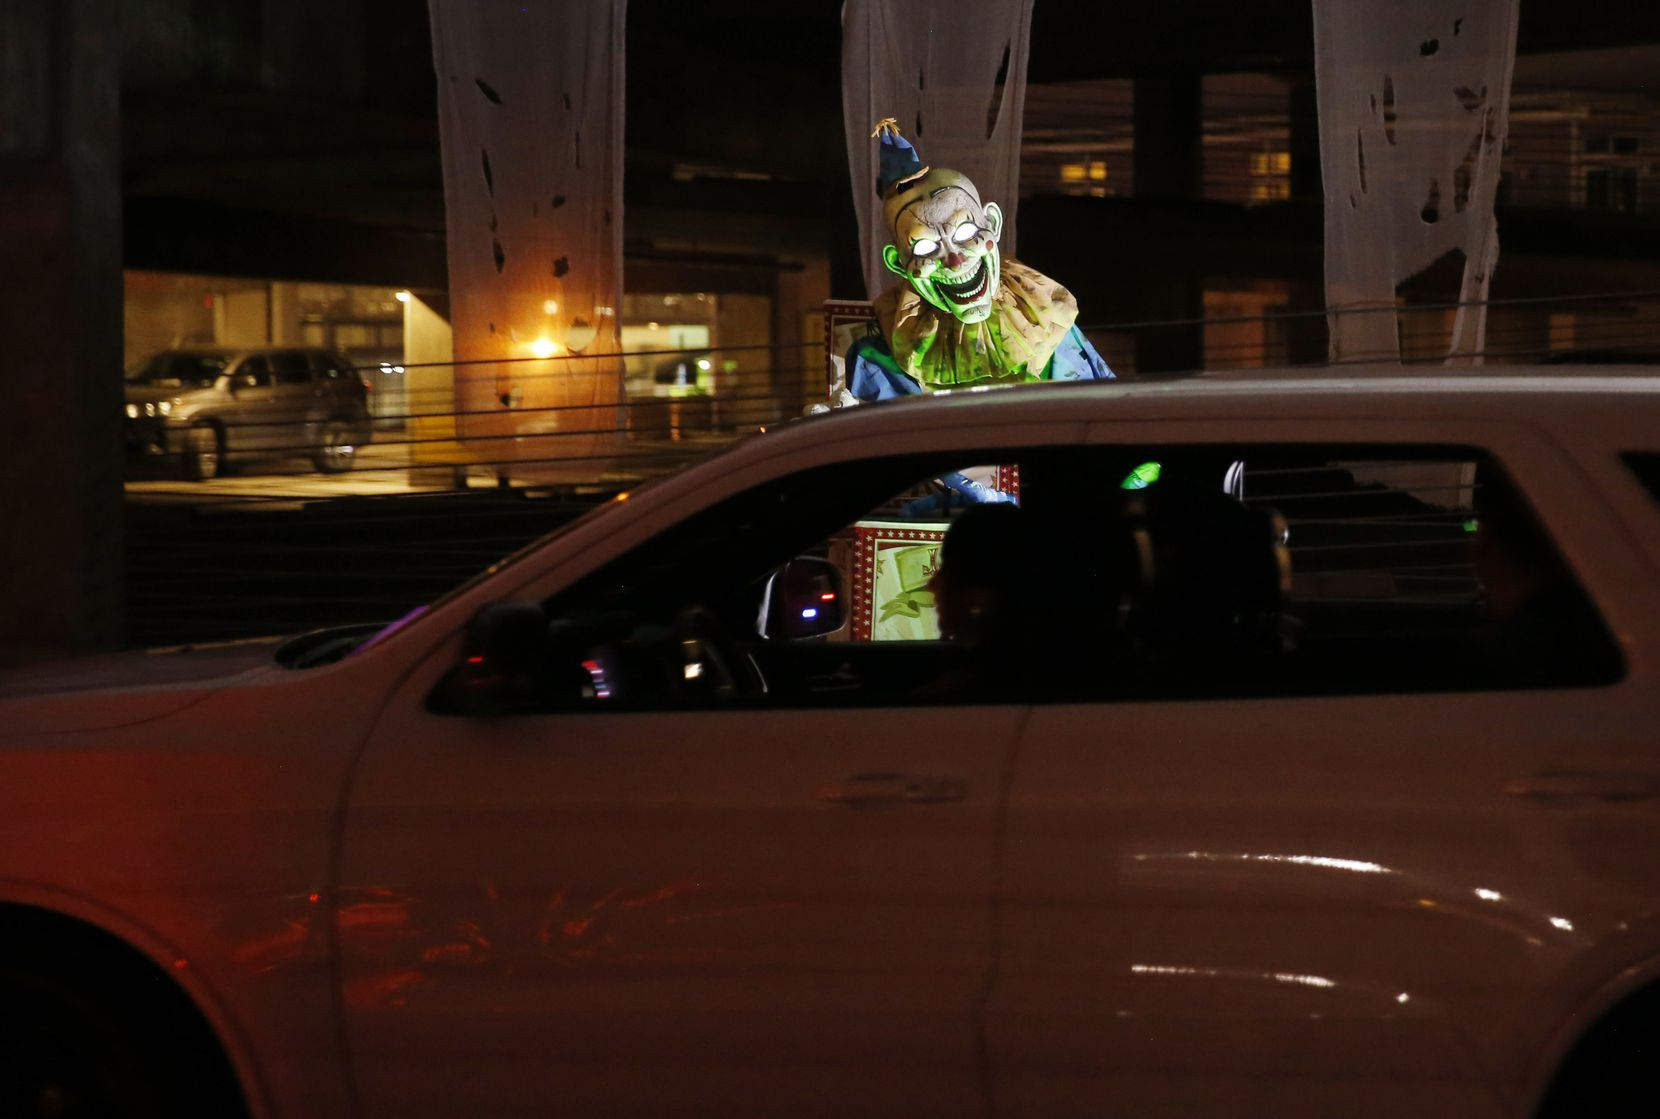 DriveBoo is a drive-through Halloween event this year at the American Airlines Center in Dallas.